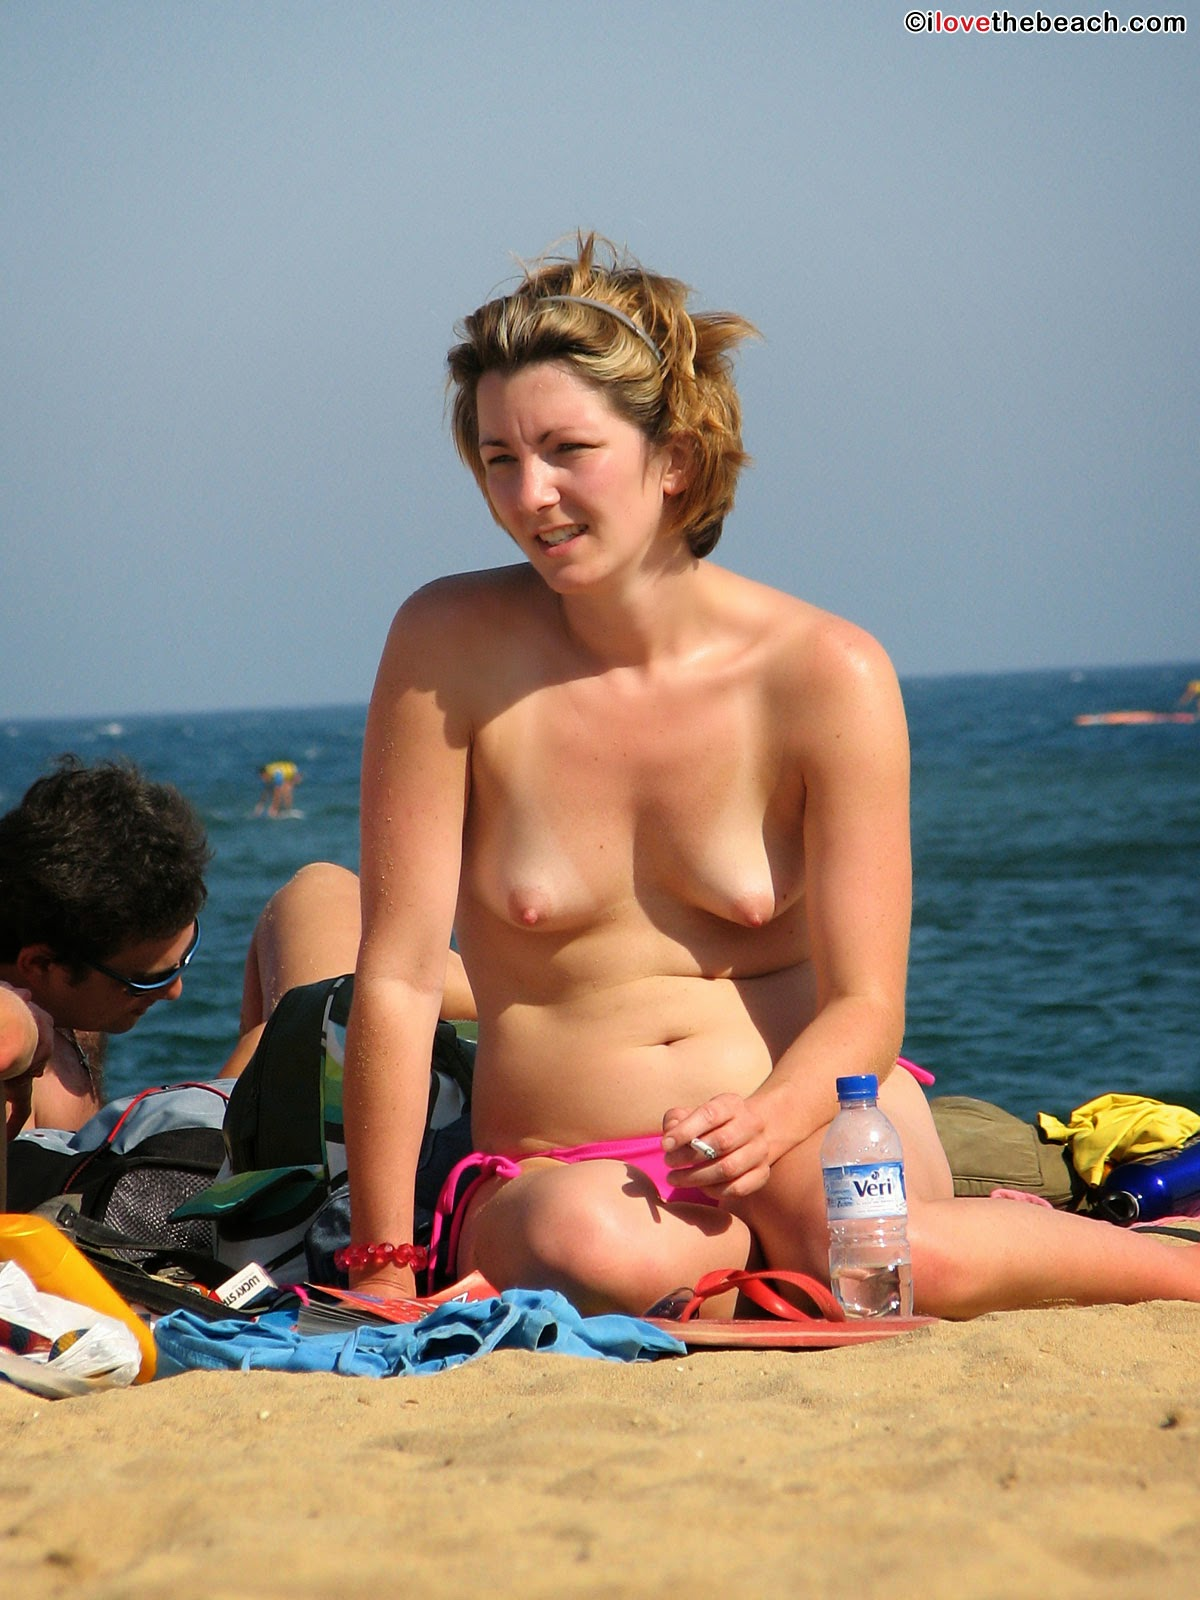 What excellent Amateur nude beach women think